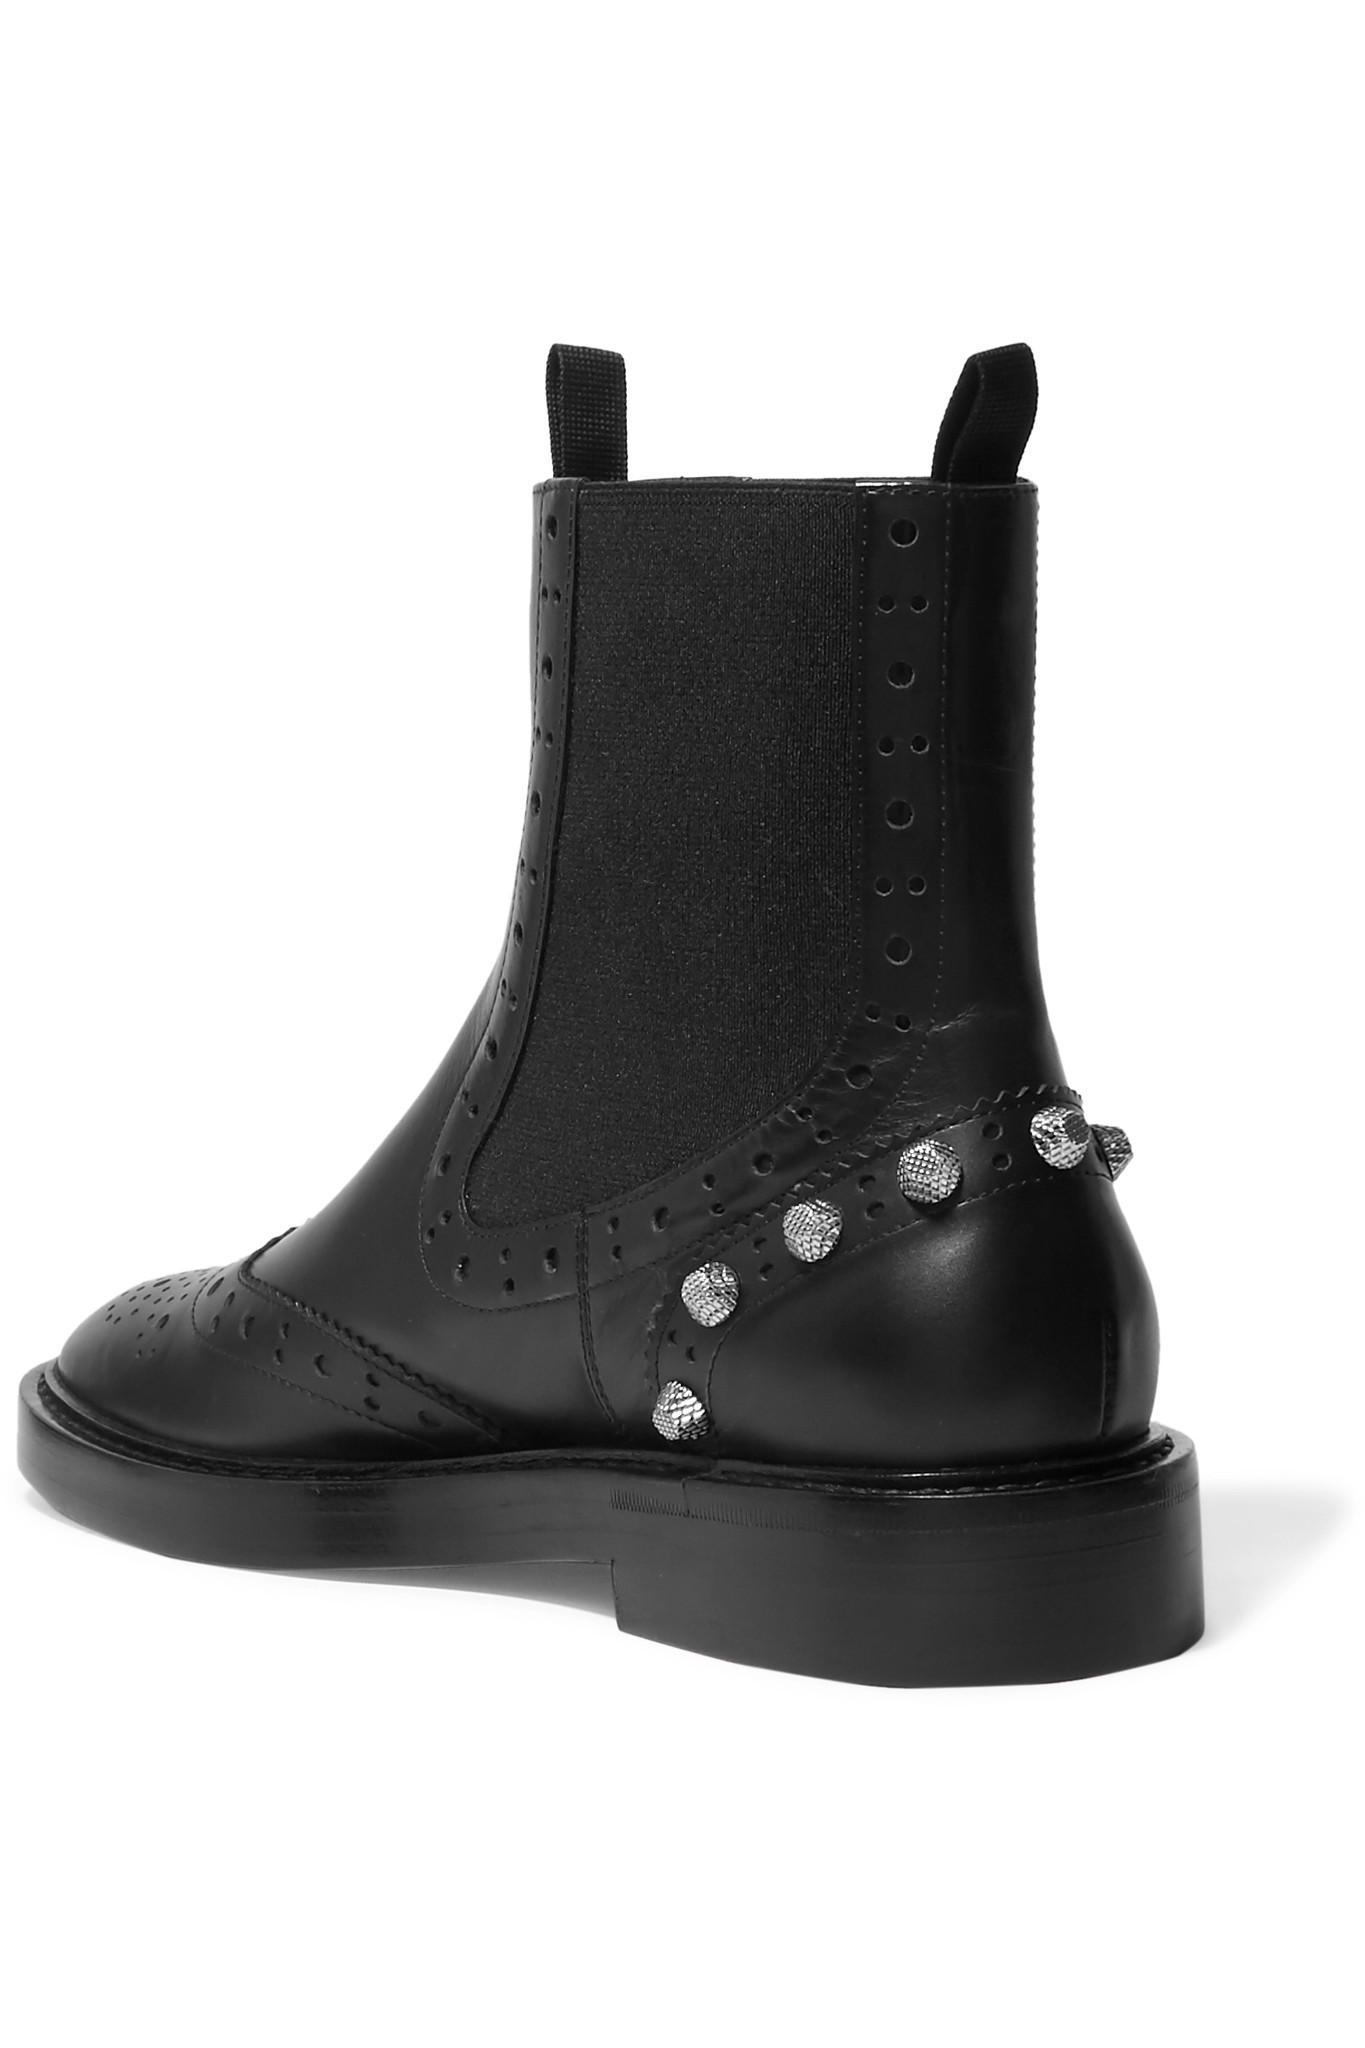 3863eb176c5a7 Lyst - Balenciaga Studded Leather Ankle Boots in Black